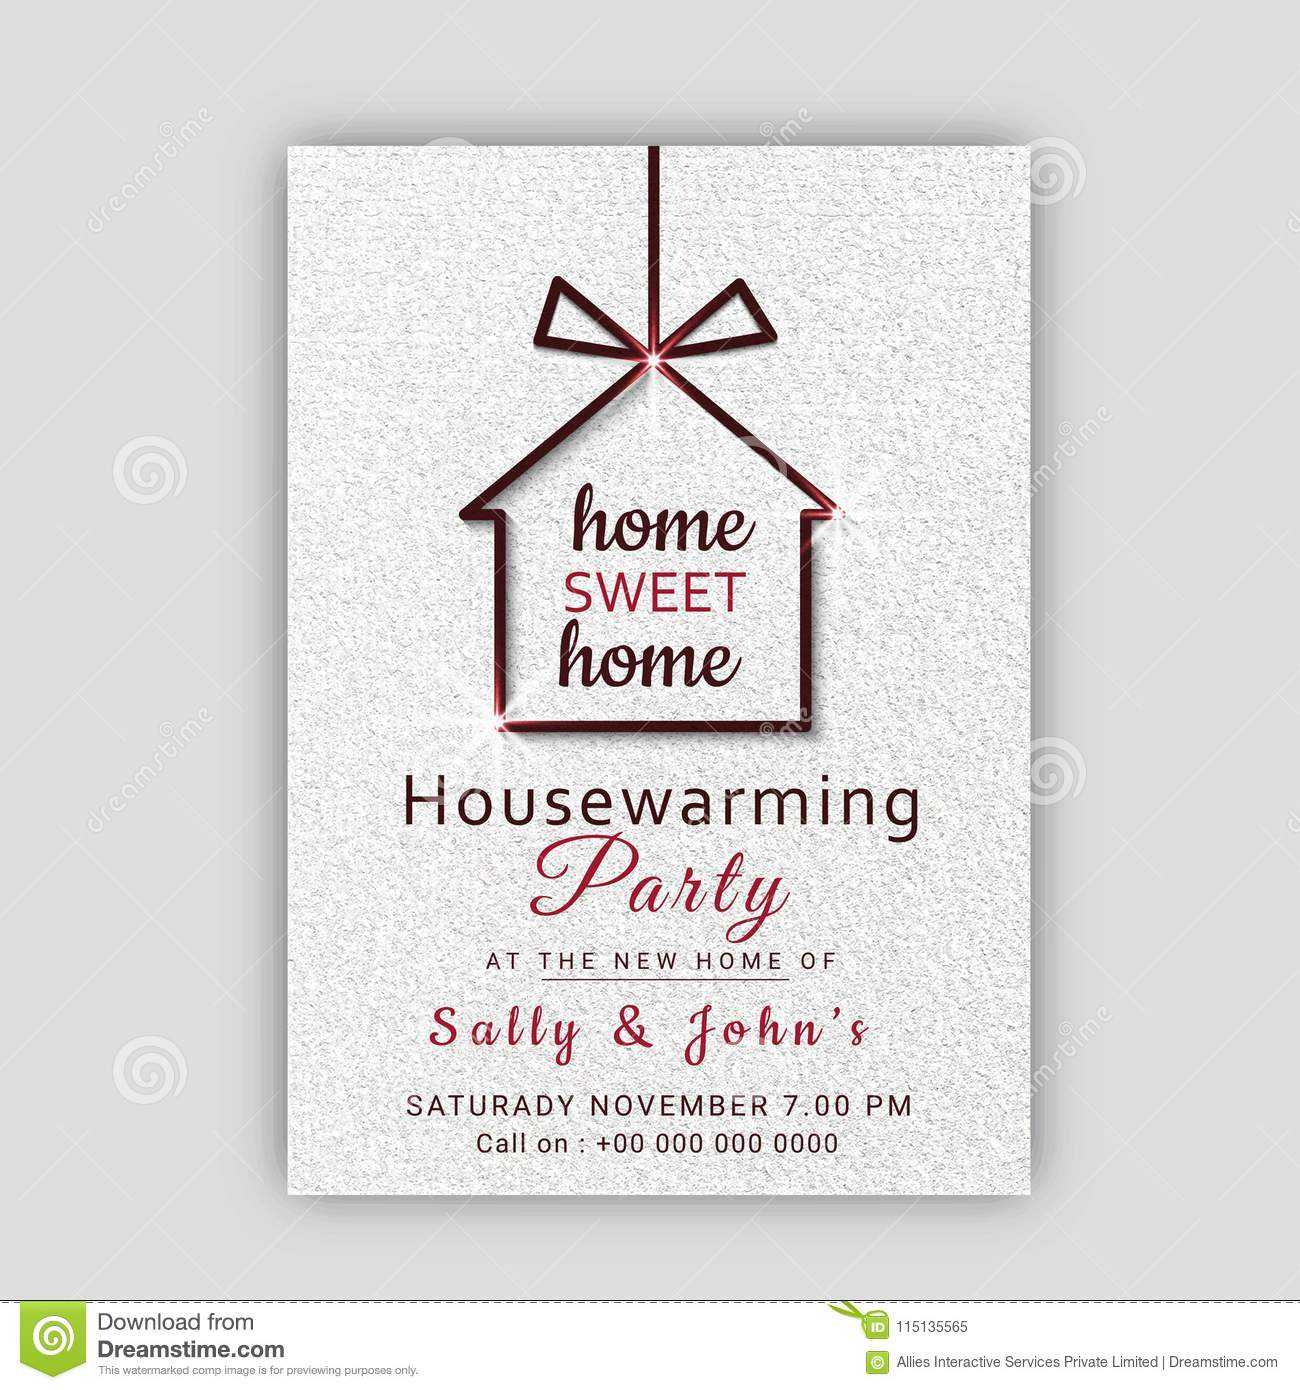 Housewarming Party Invitation Card Design. Stock With Free Housewarming Invitation Card Template